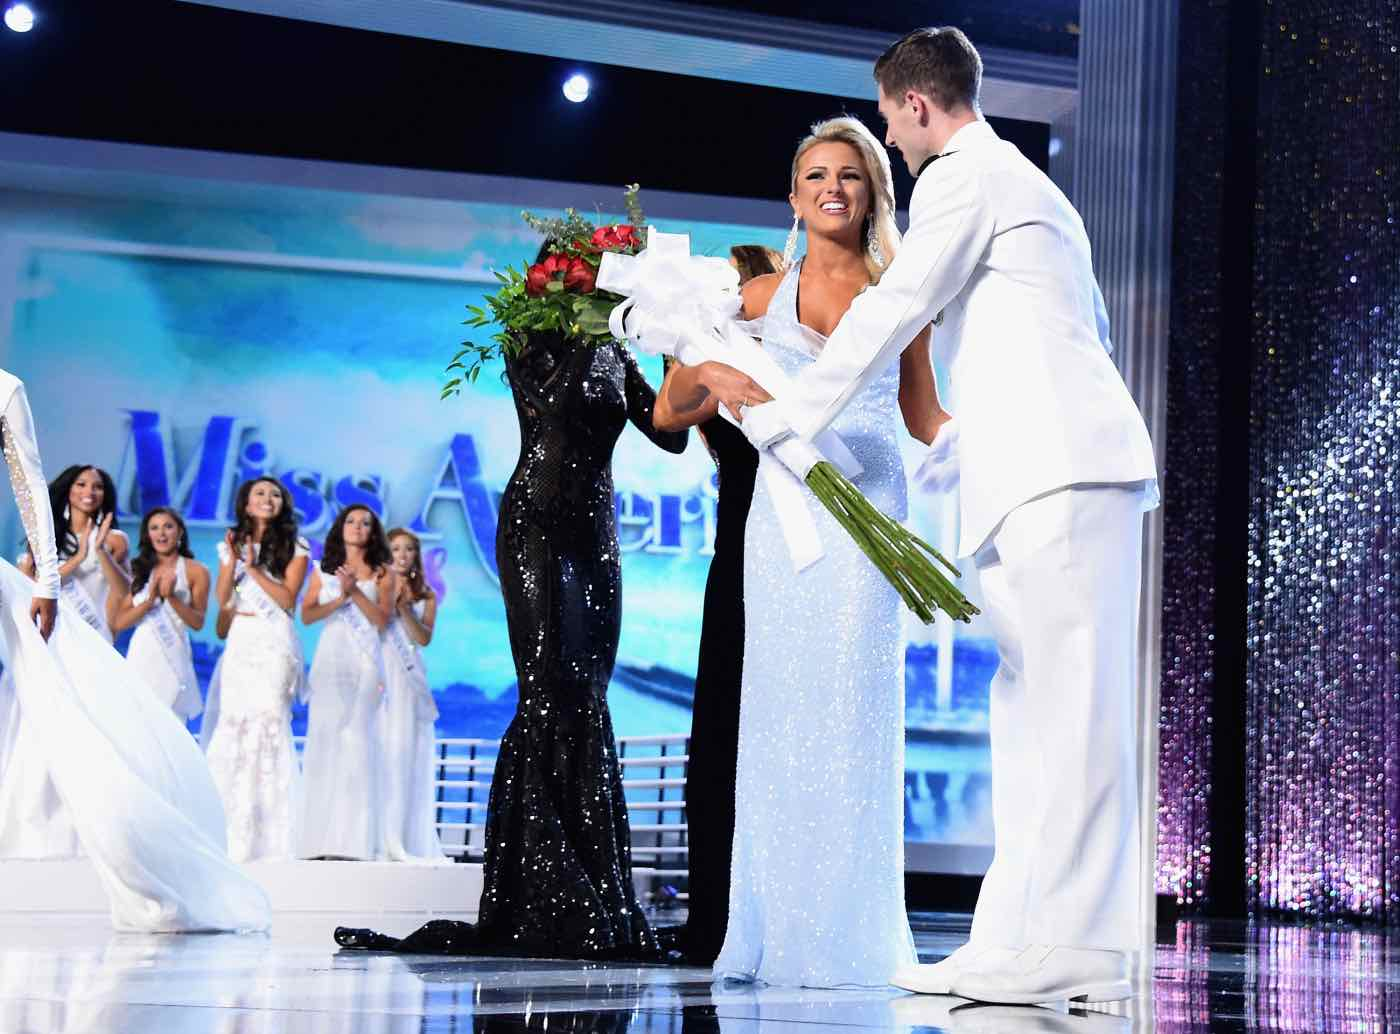 3 resignations, 1 apology among Miss America leadership in email shaming scandal